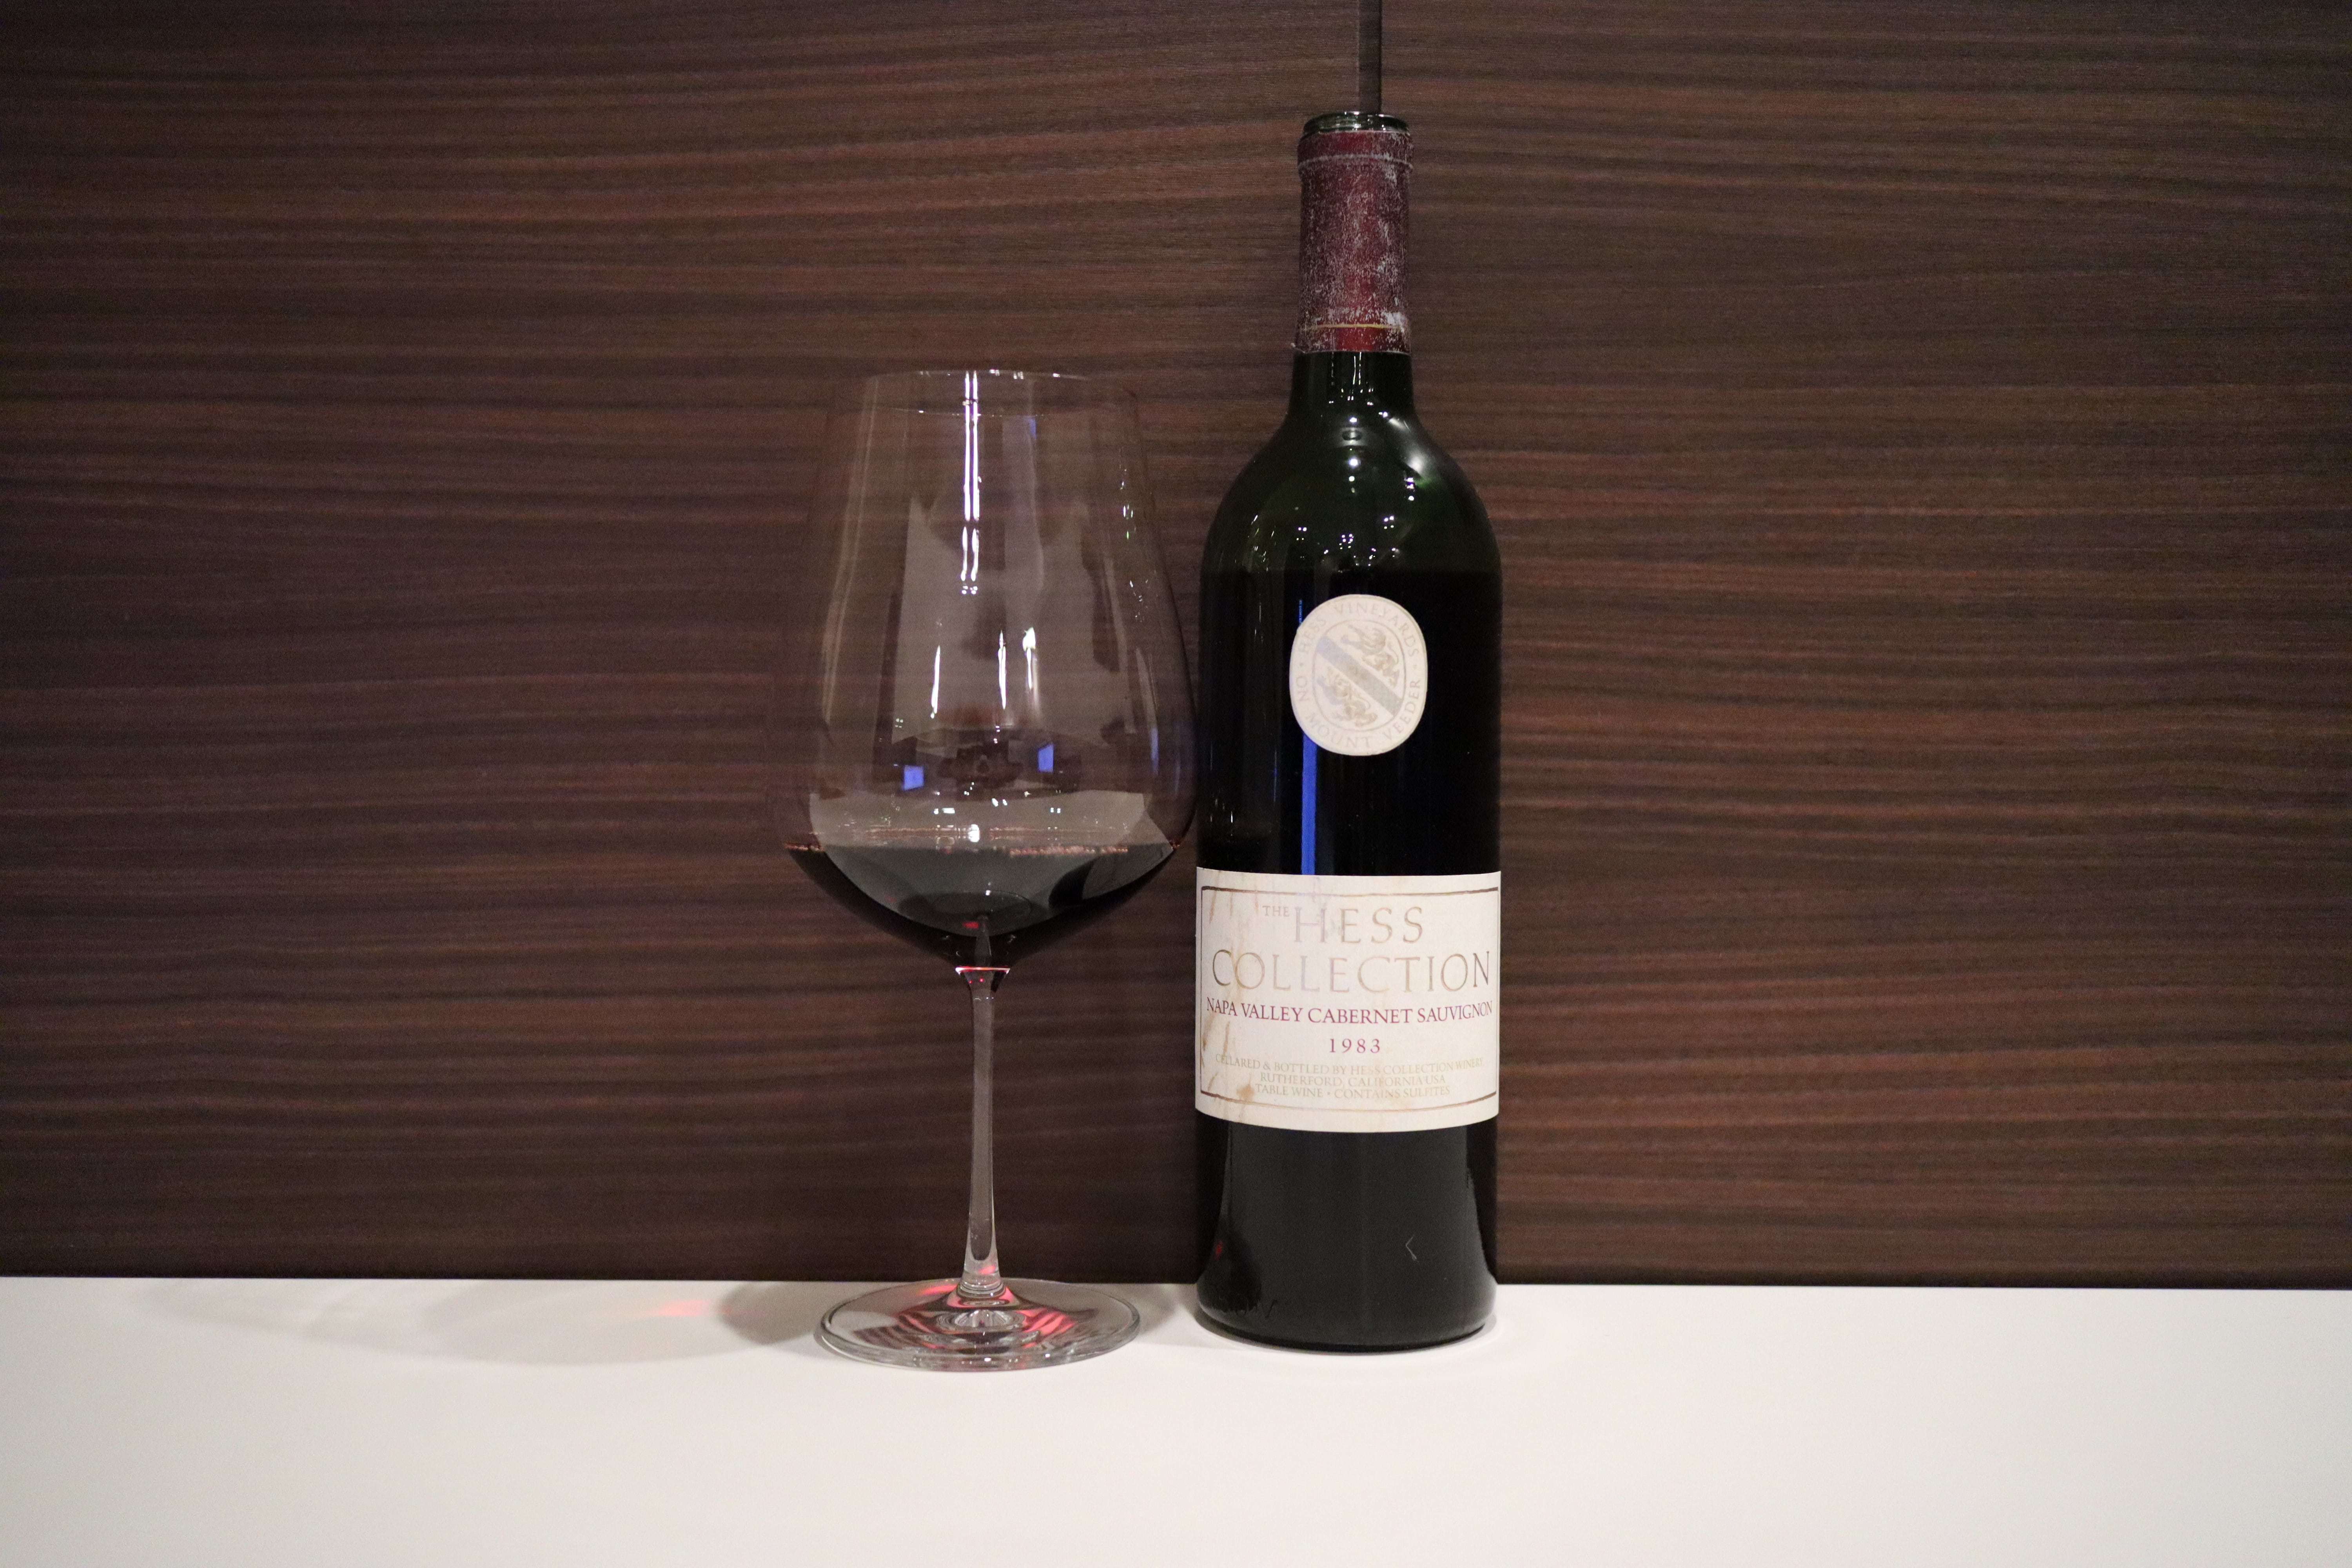 Hess Collection Cabernet Sauvignon 1983